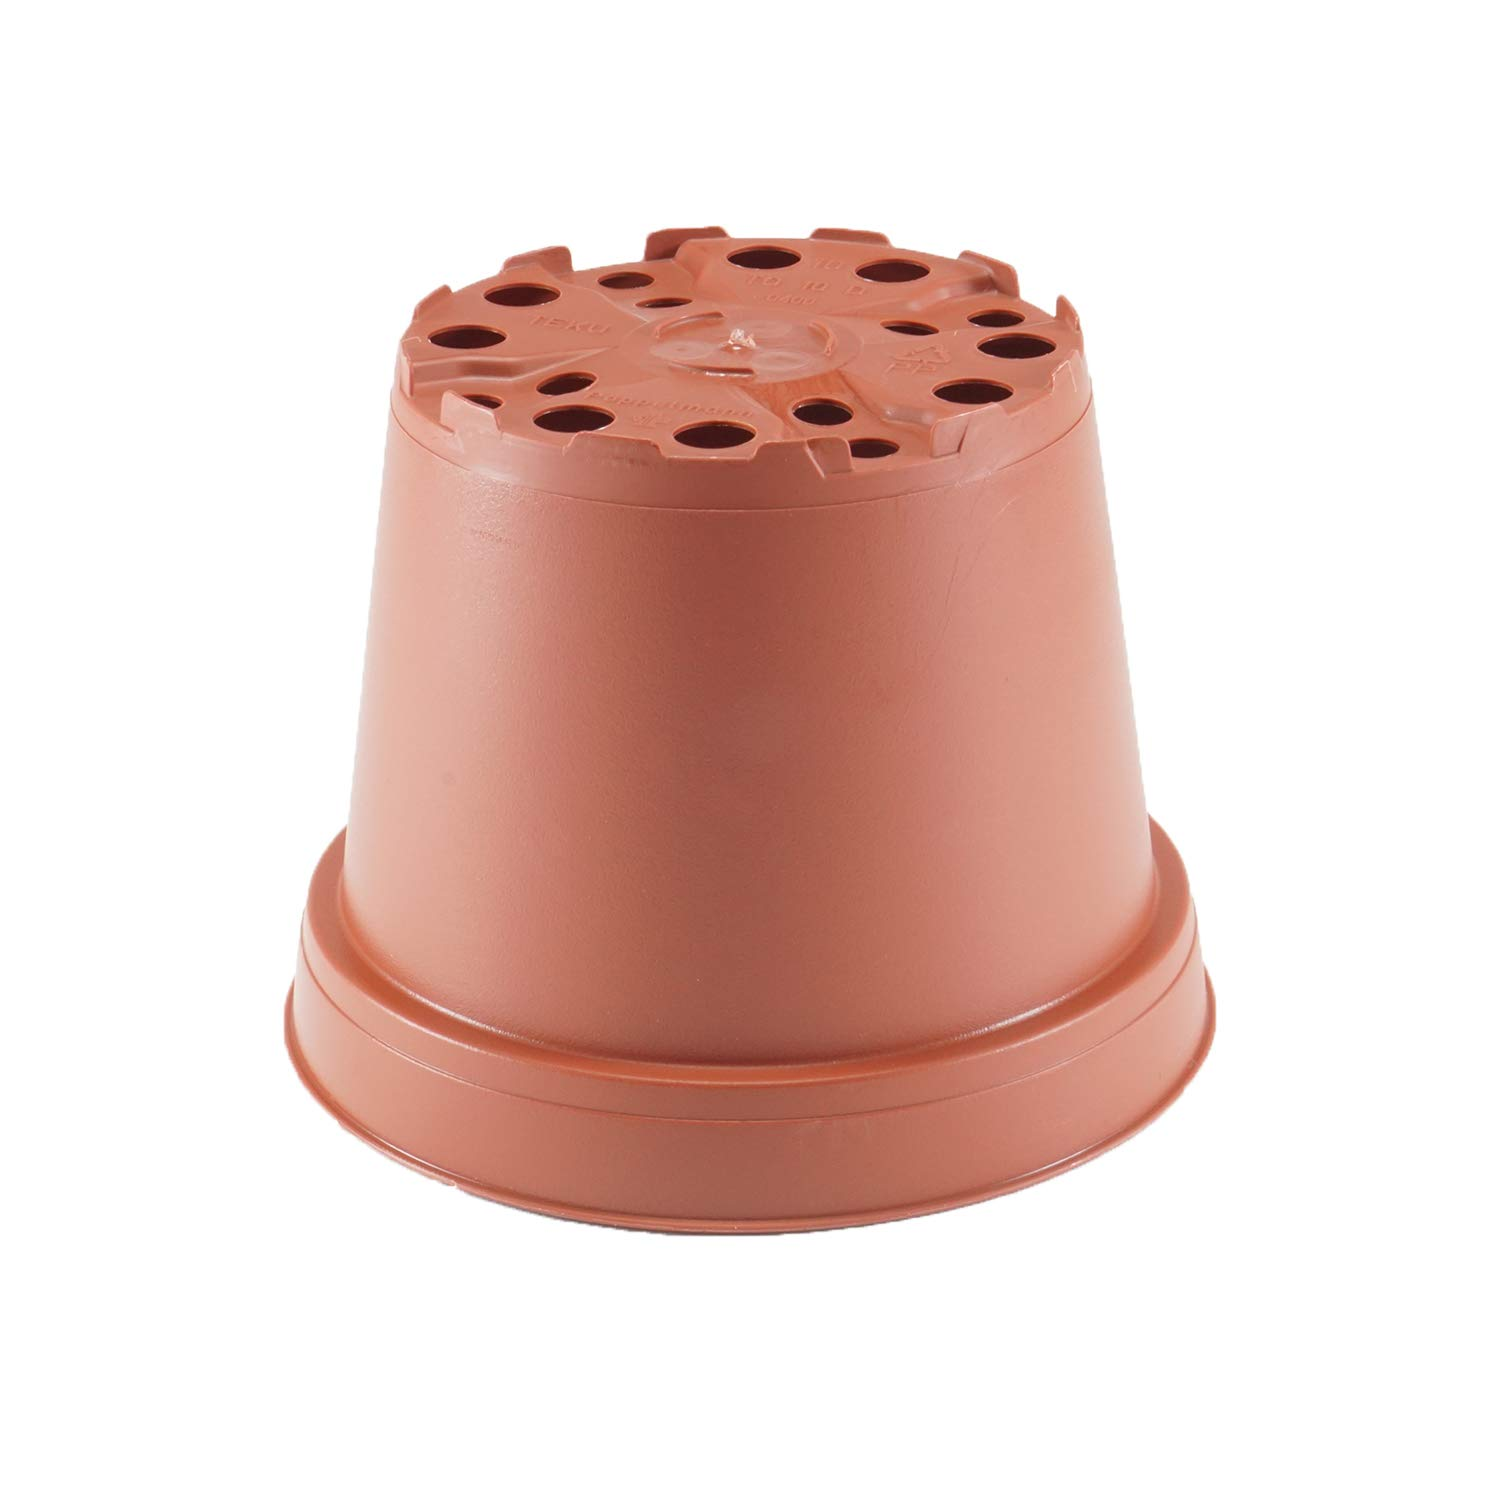 25 Pots Succulents The Hydroponic City 4 Round Terracotta Plastic Flower Pots for Starting Seedlings + 5 THCity Stakes or Cacti